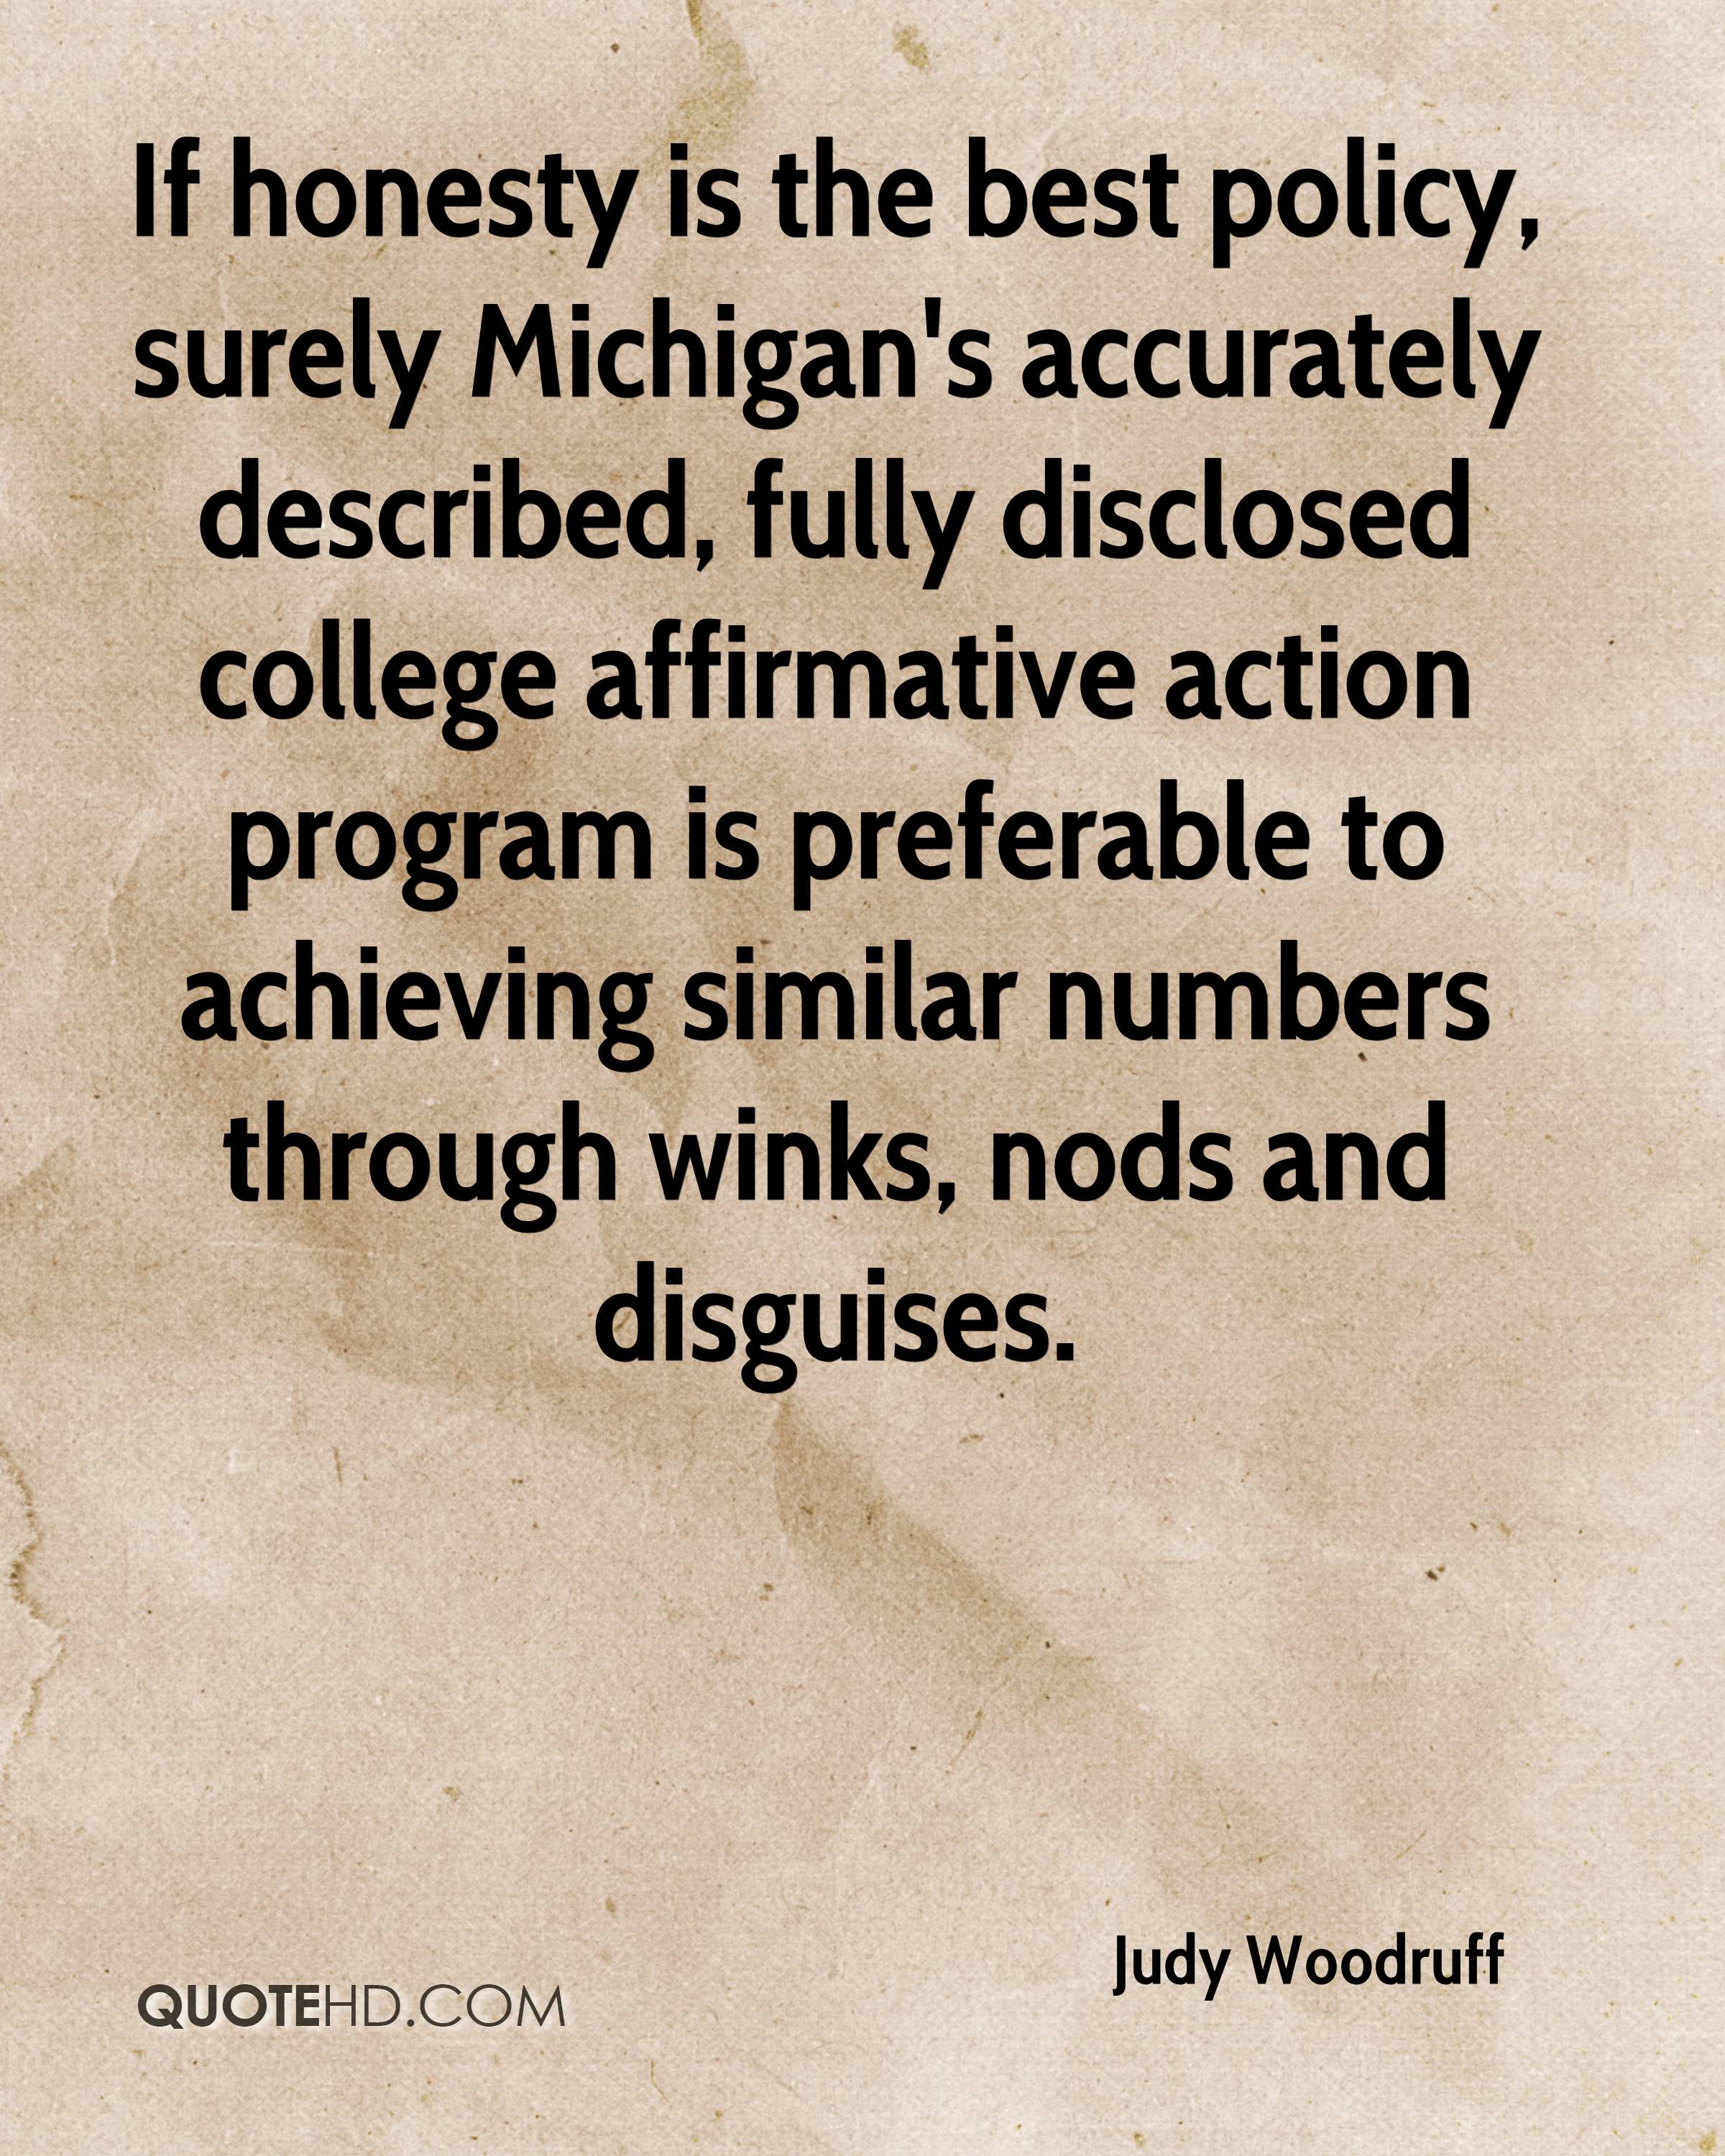 If honesty is the best policy, surely Michigan's accurately described, fully disclosed college affirmative action program is preferable to achieving similar numbers through winks, nods and disguises.